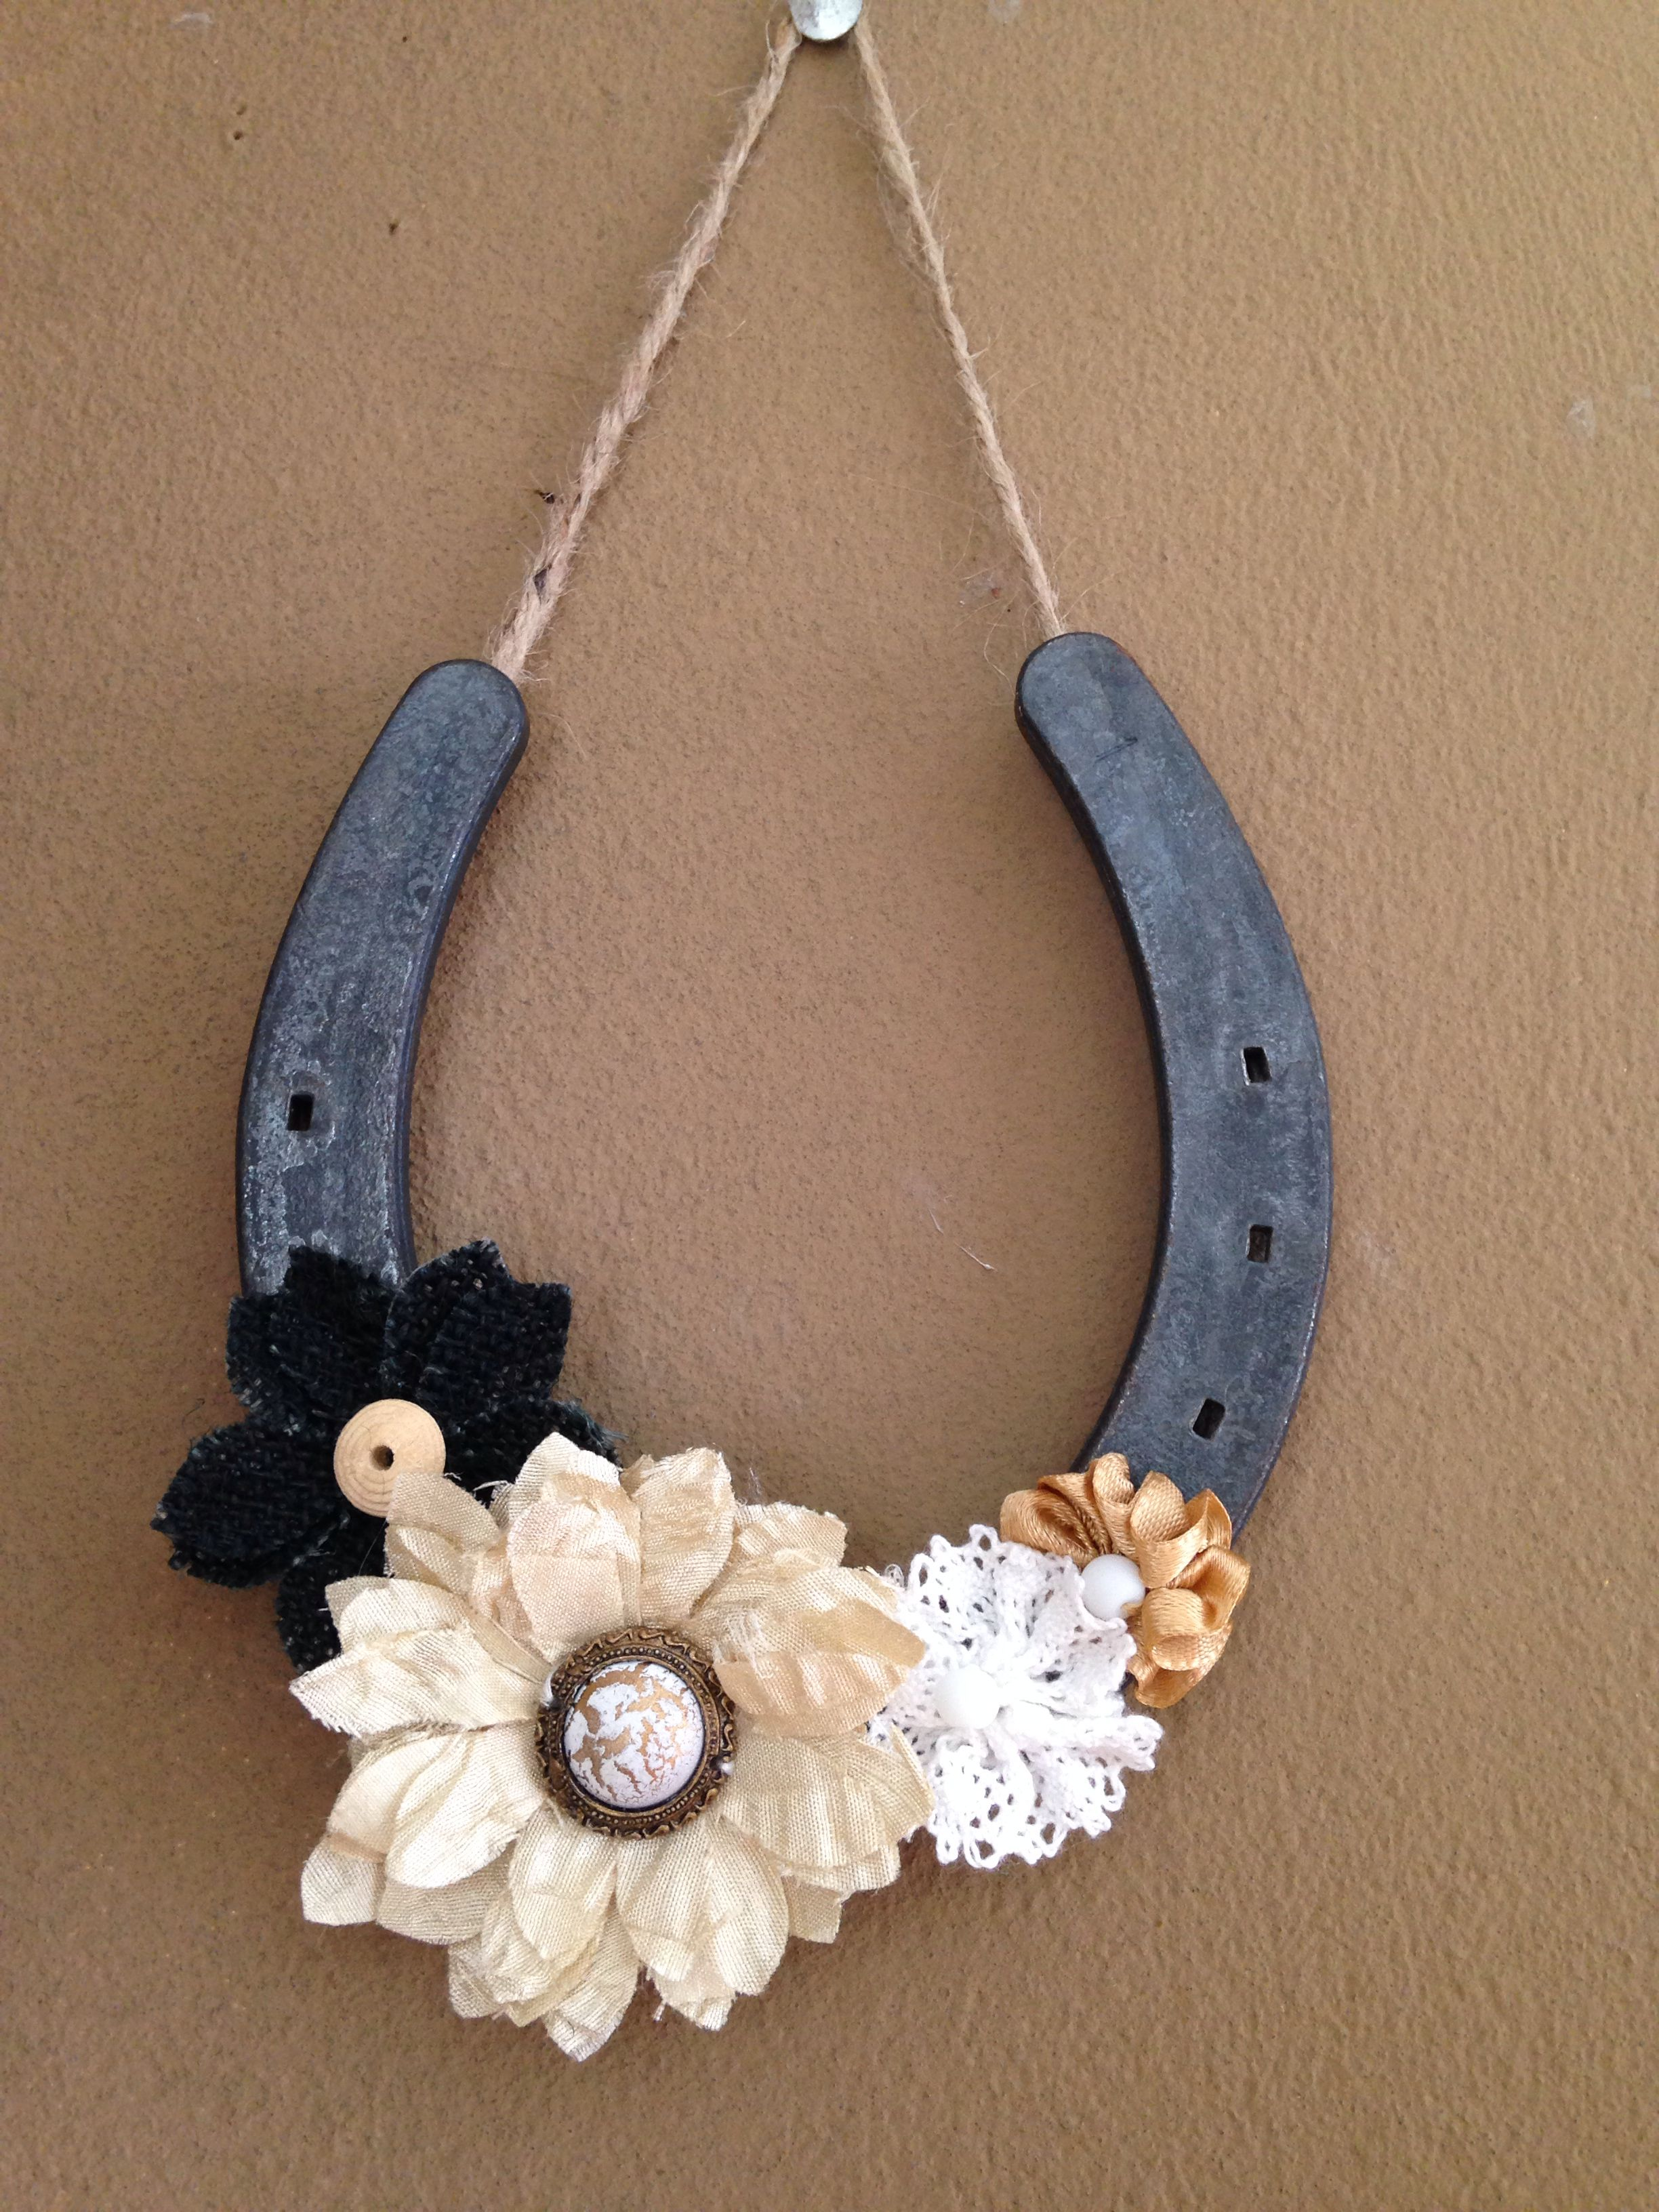 Horseshoe Wall Hanging Easy To Make And Inexpensive All You Need Is Hot Glue Twine Fabric Flowers I Bought Mi Horseshoe Crafts Horseshoe Decor Shoe Crafts